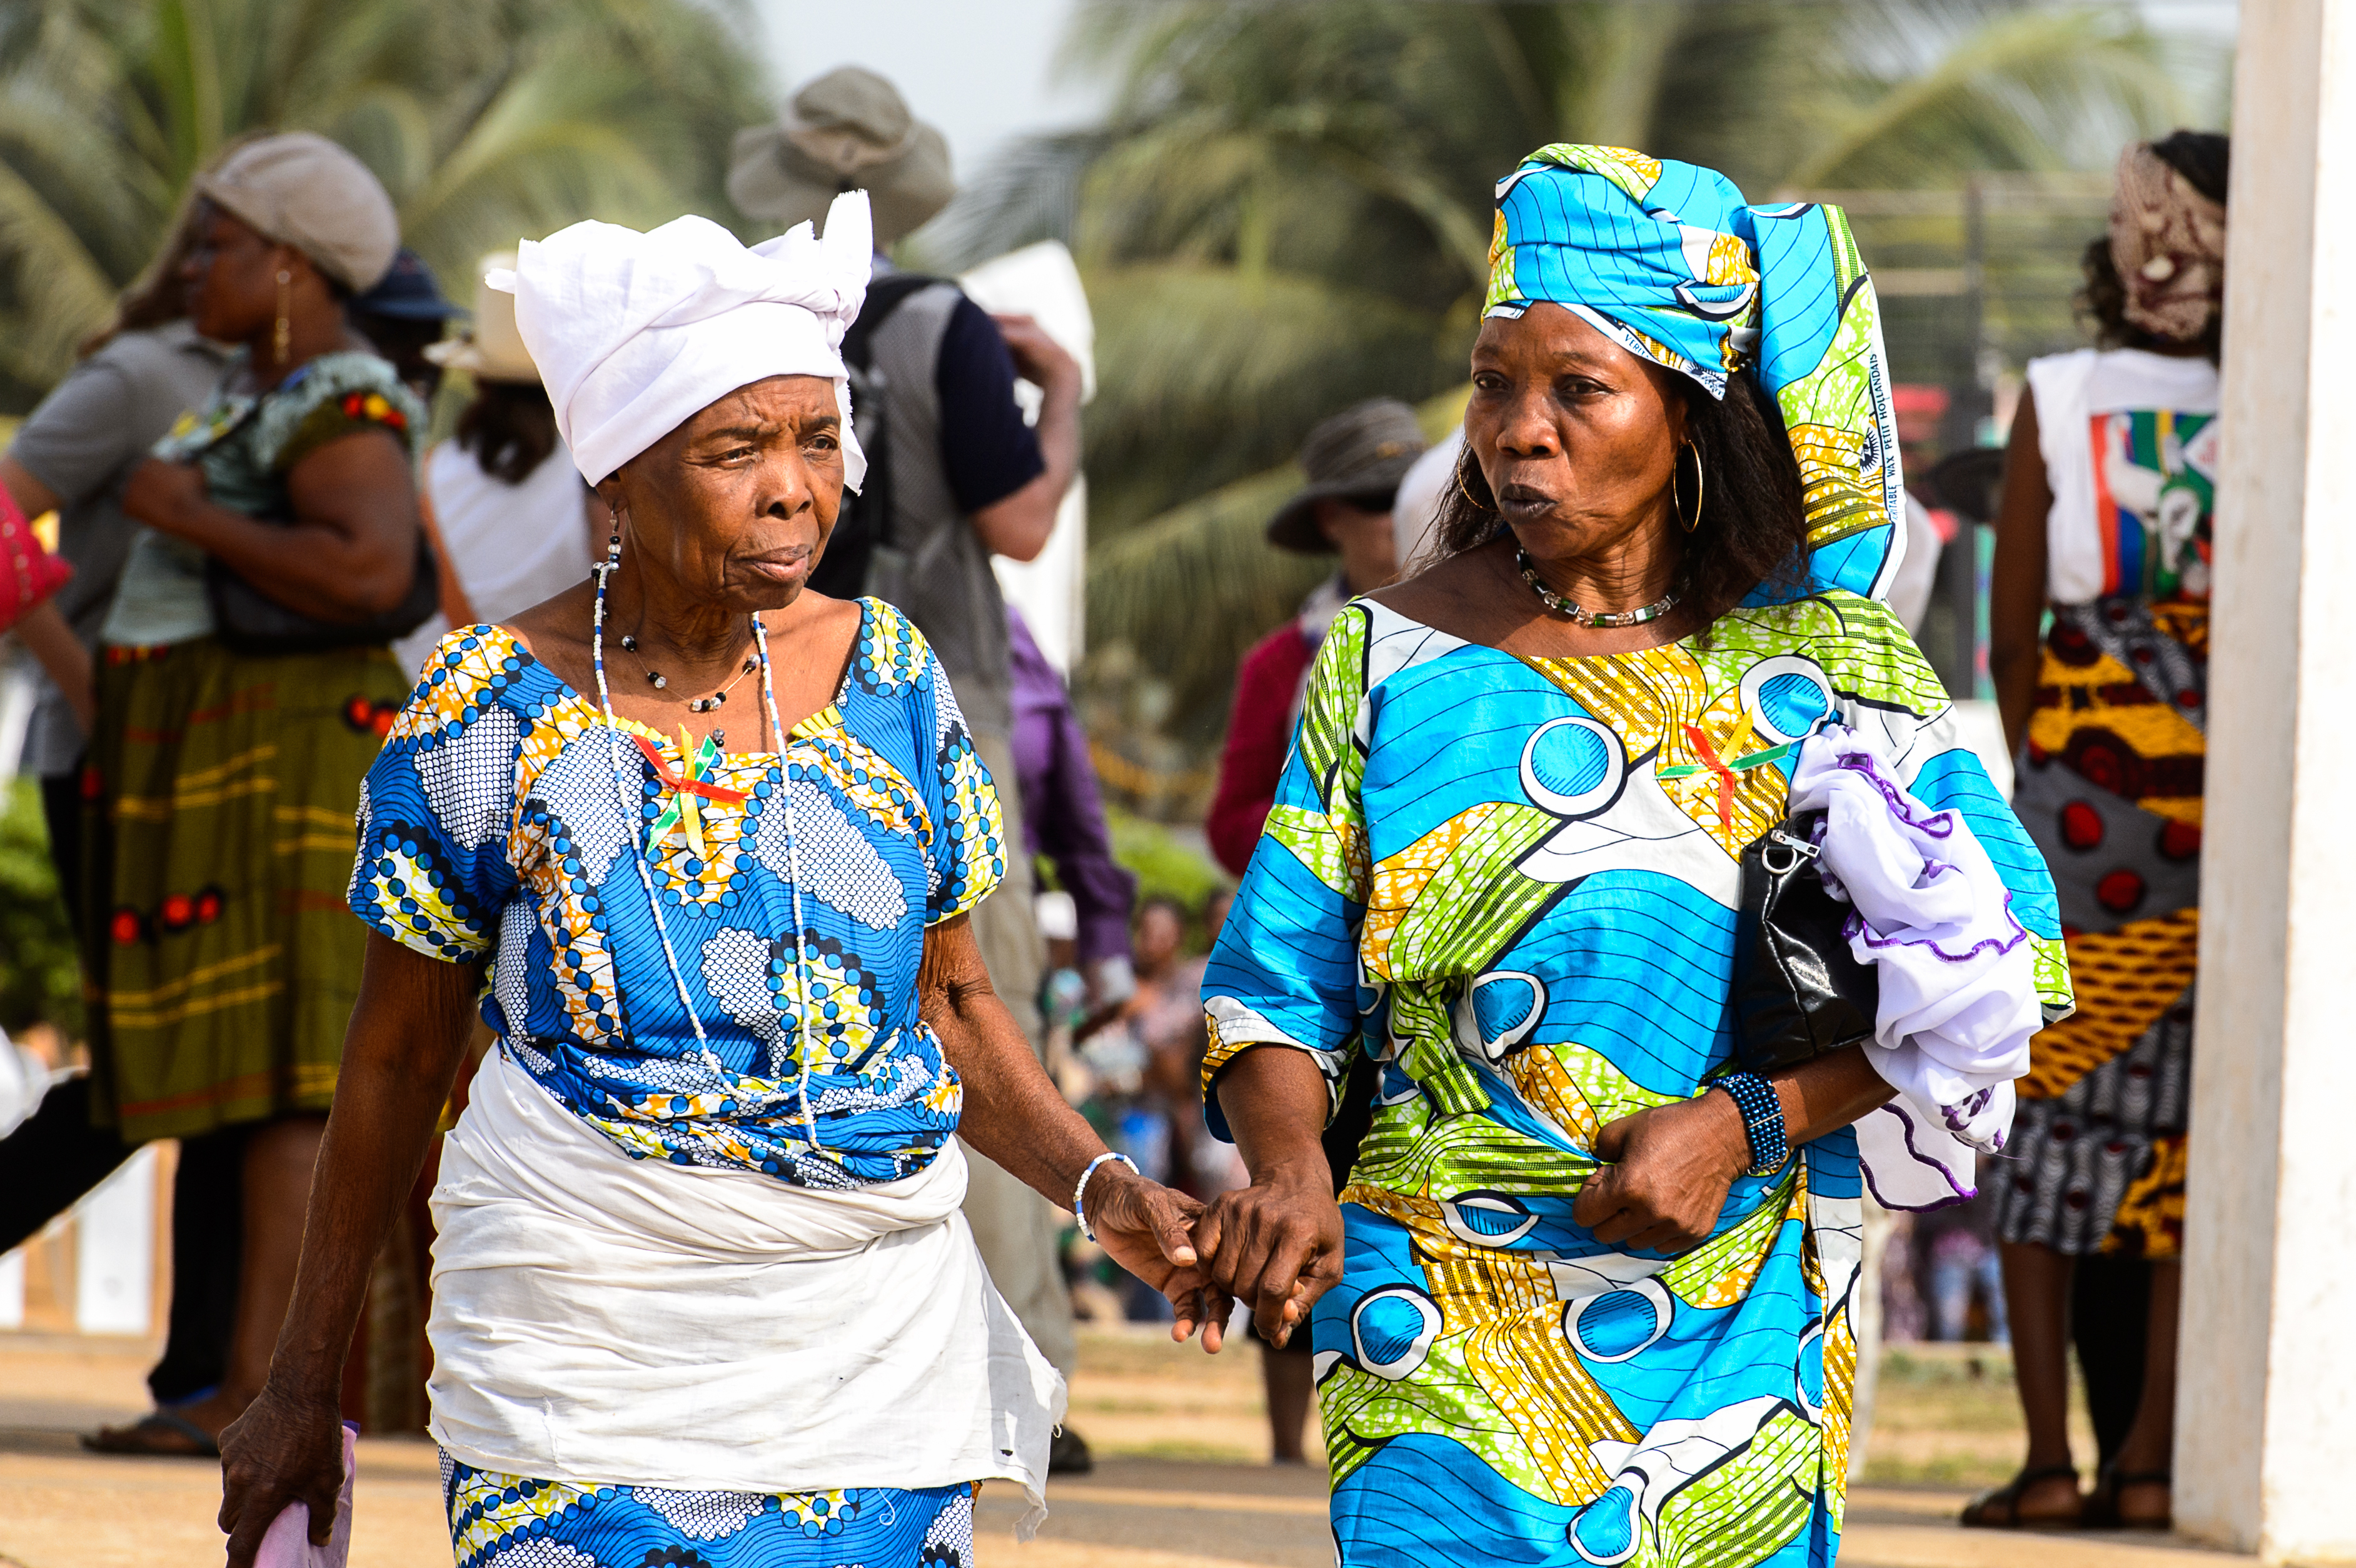 Why Age Gives West African Women More Autonomy and Power